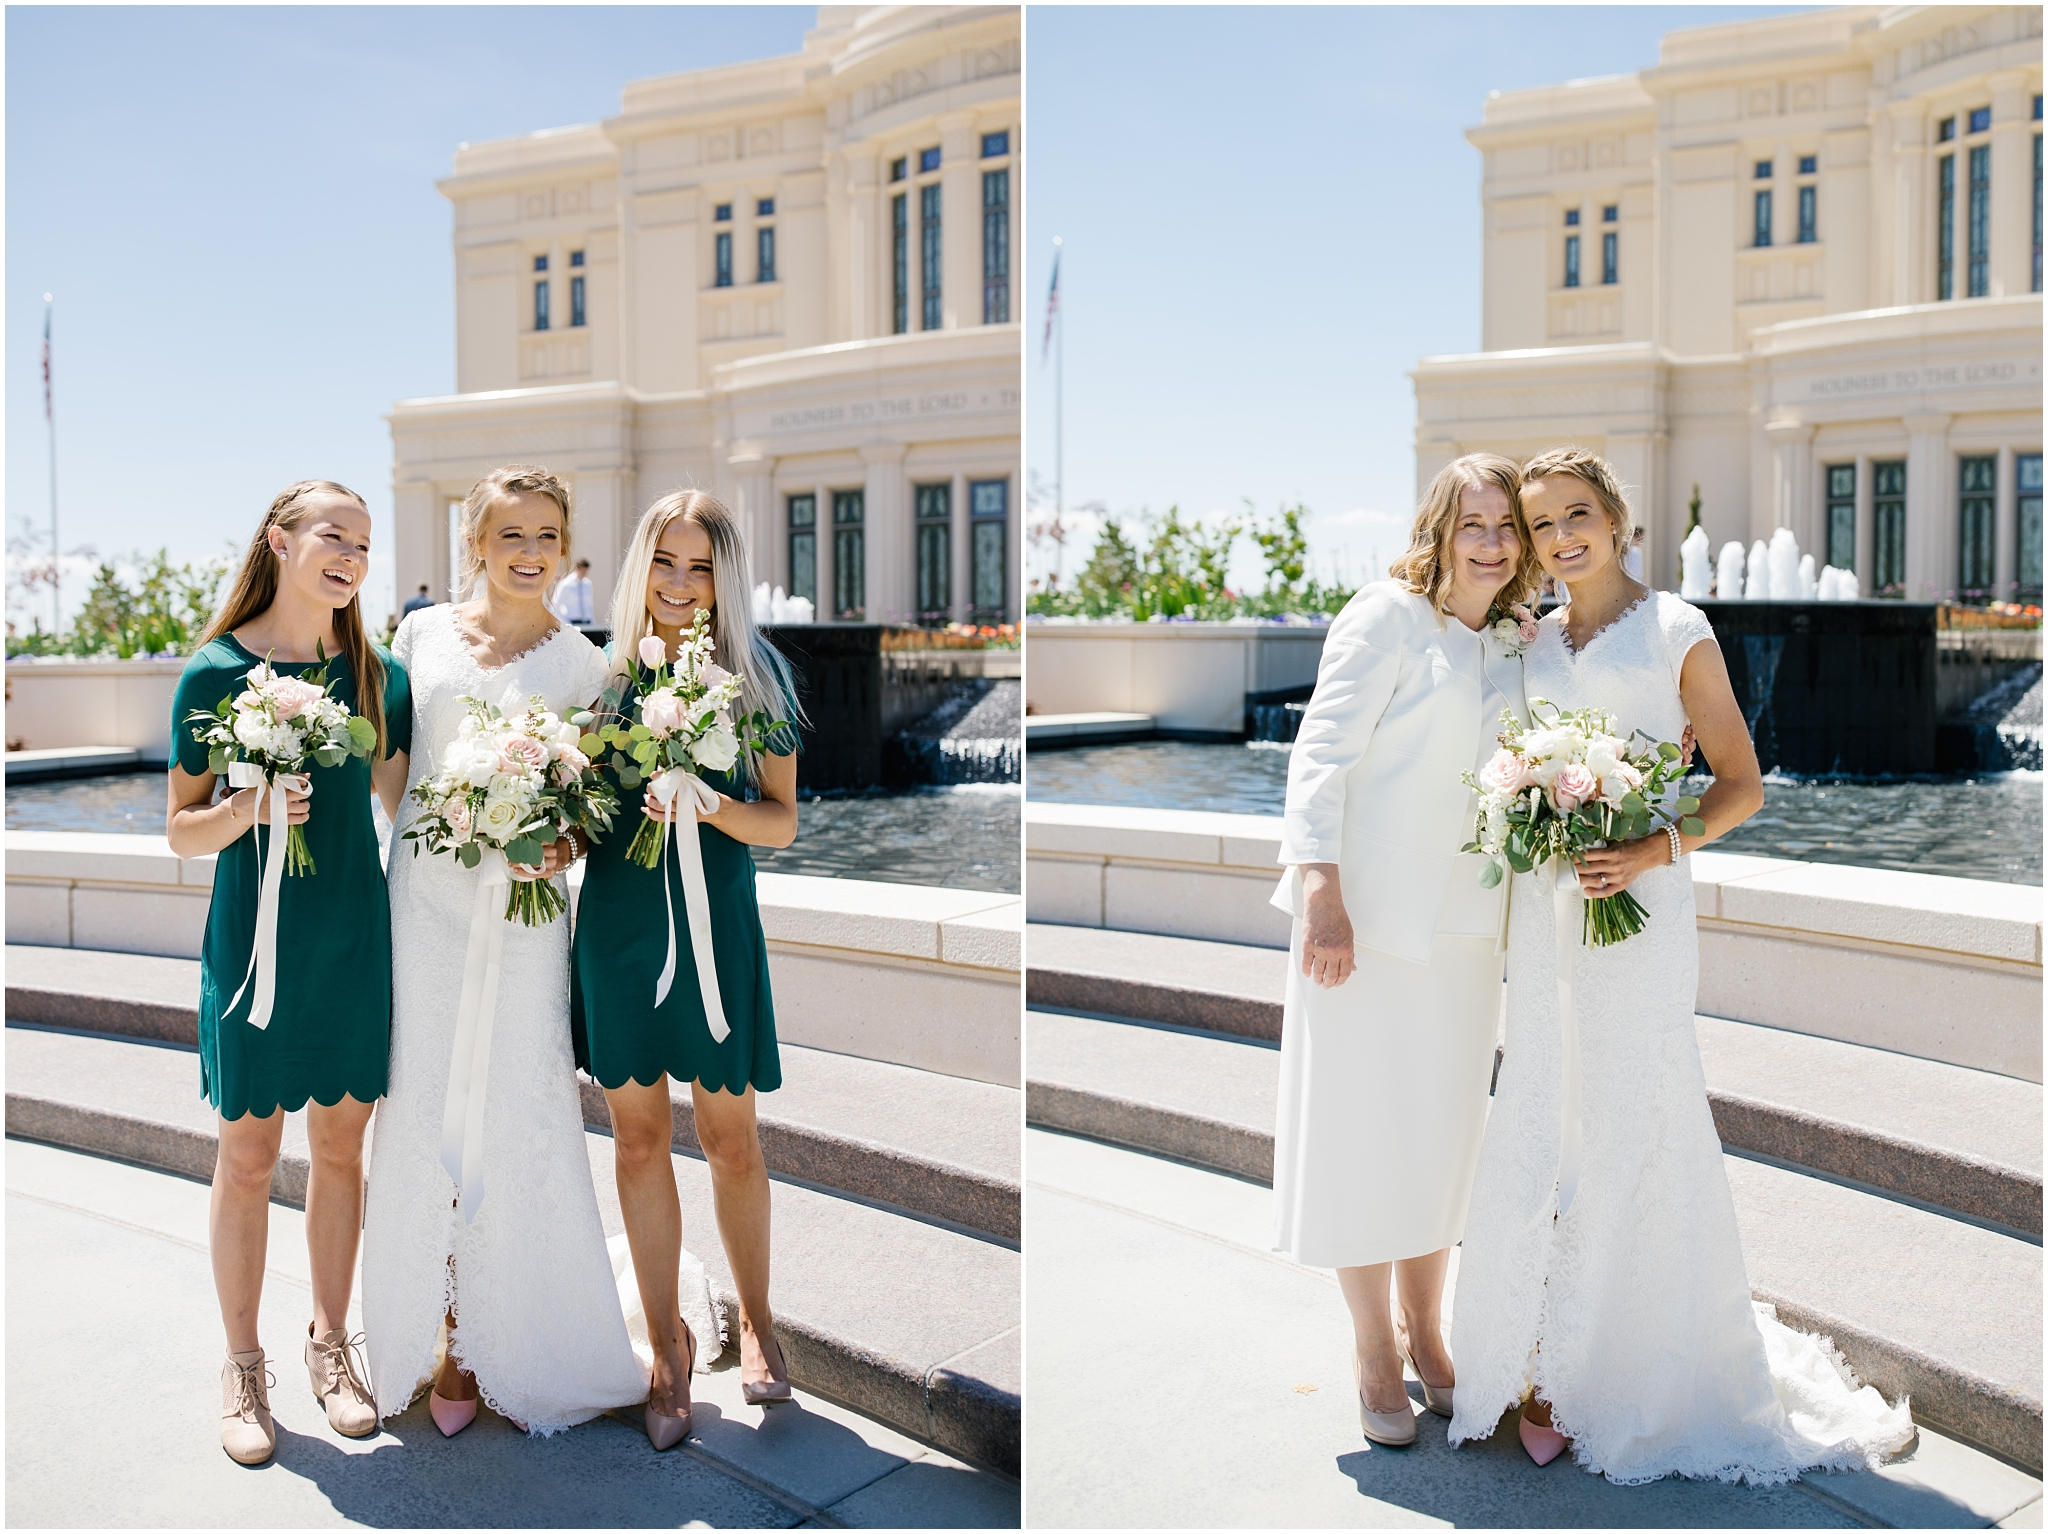 Lizzie-B-Imagery-Utah-Wedding-Photographer-Thanksgiving-Point-Payson-Temple_0043.jpg